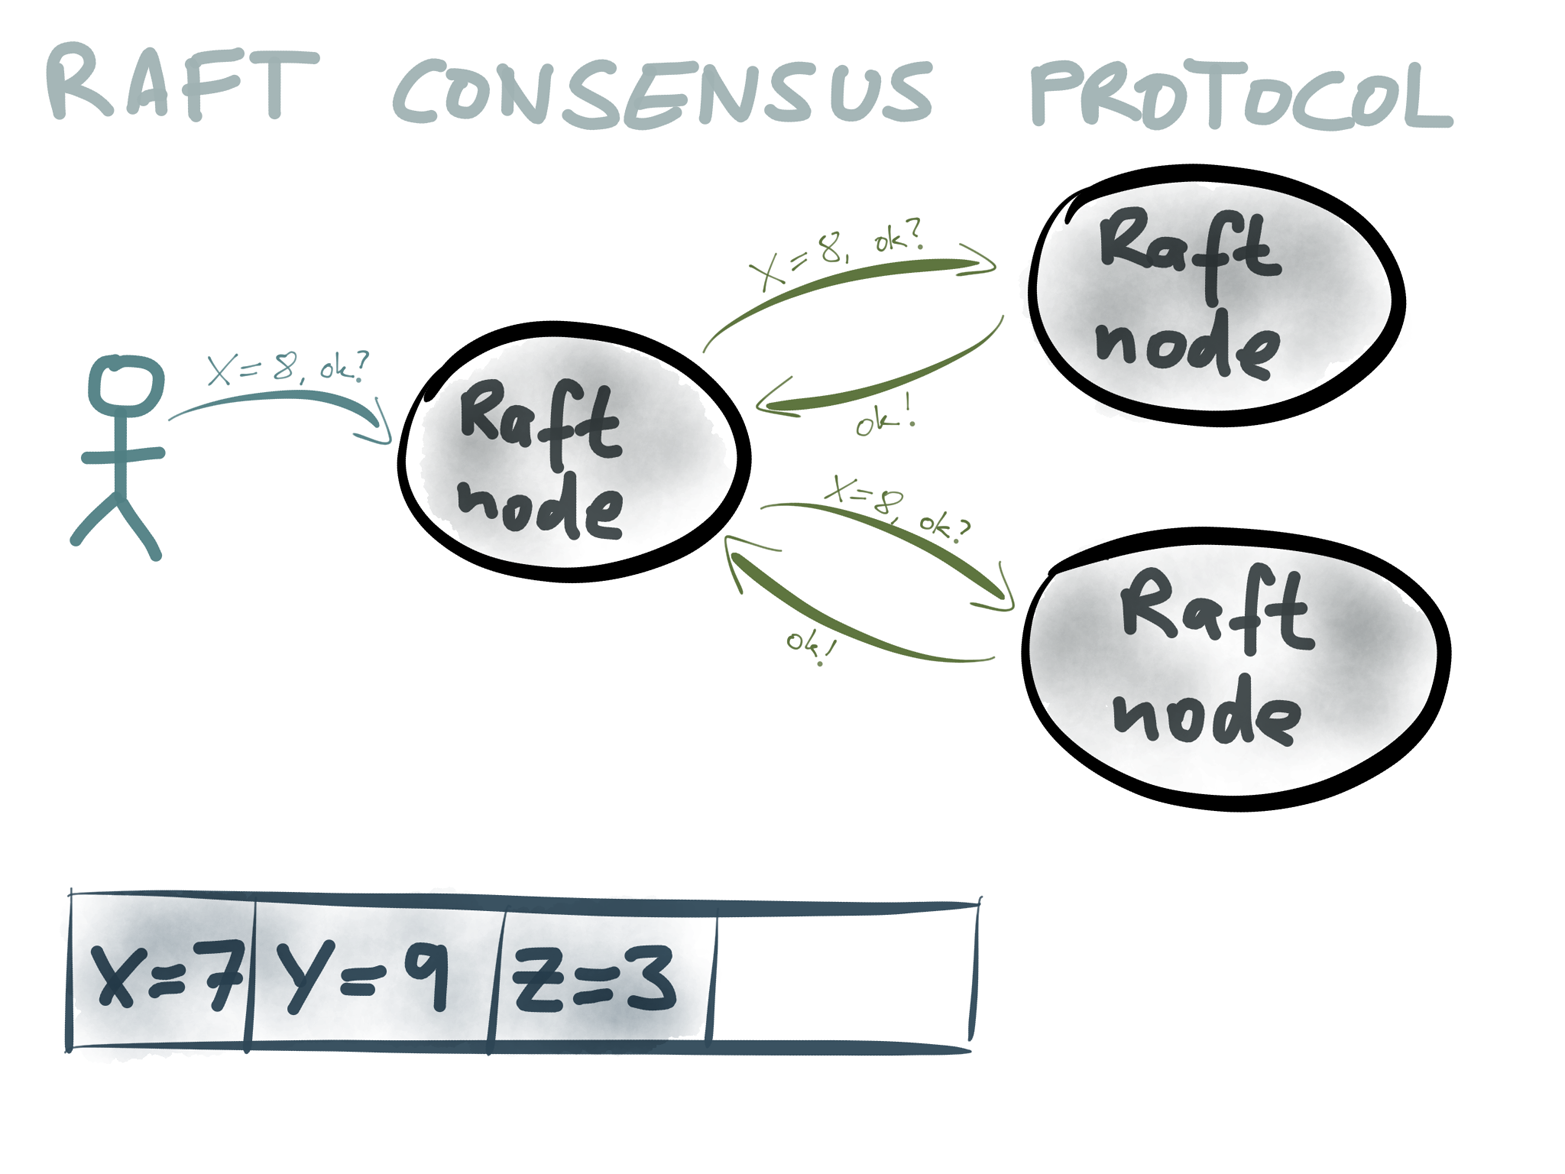 Raft consensus protocol: a value X=8 is proposed, and nodes vote on it.